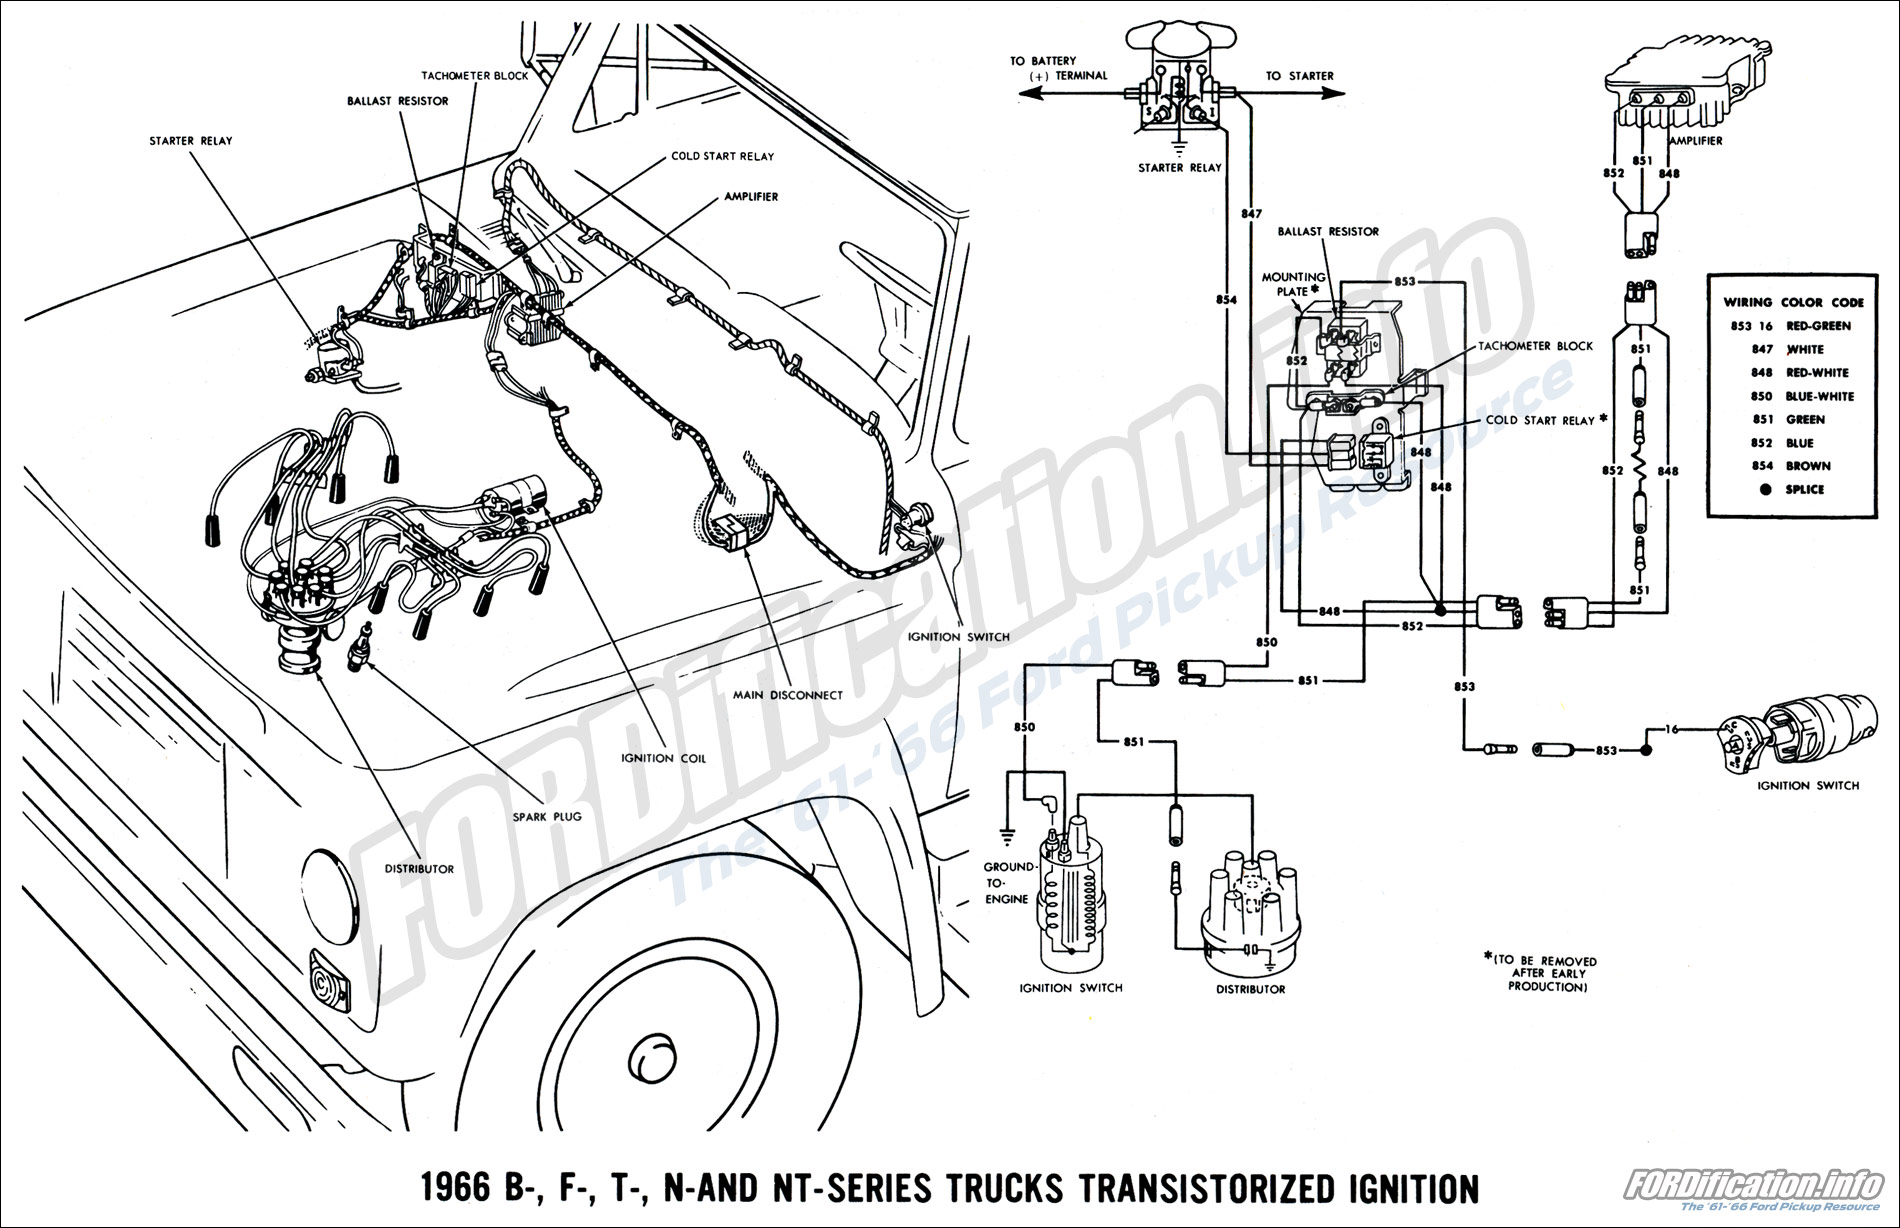 70 gmc truck fuse box wiring diagrams  66 gmc truck wiring for v6 #4